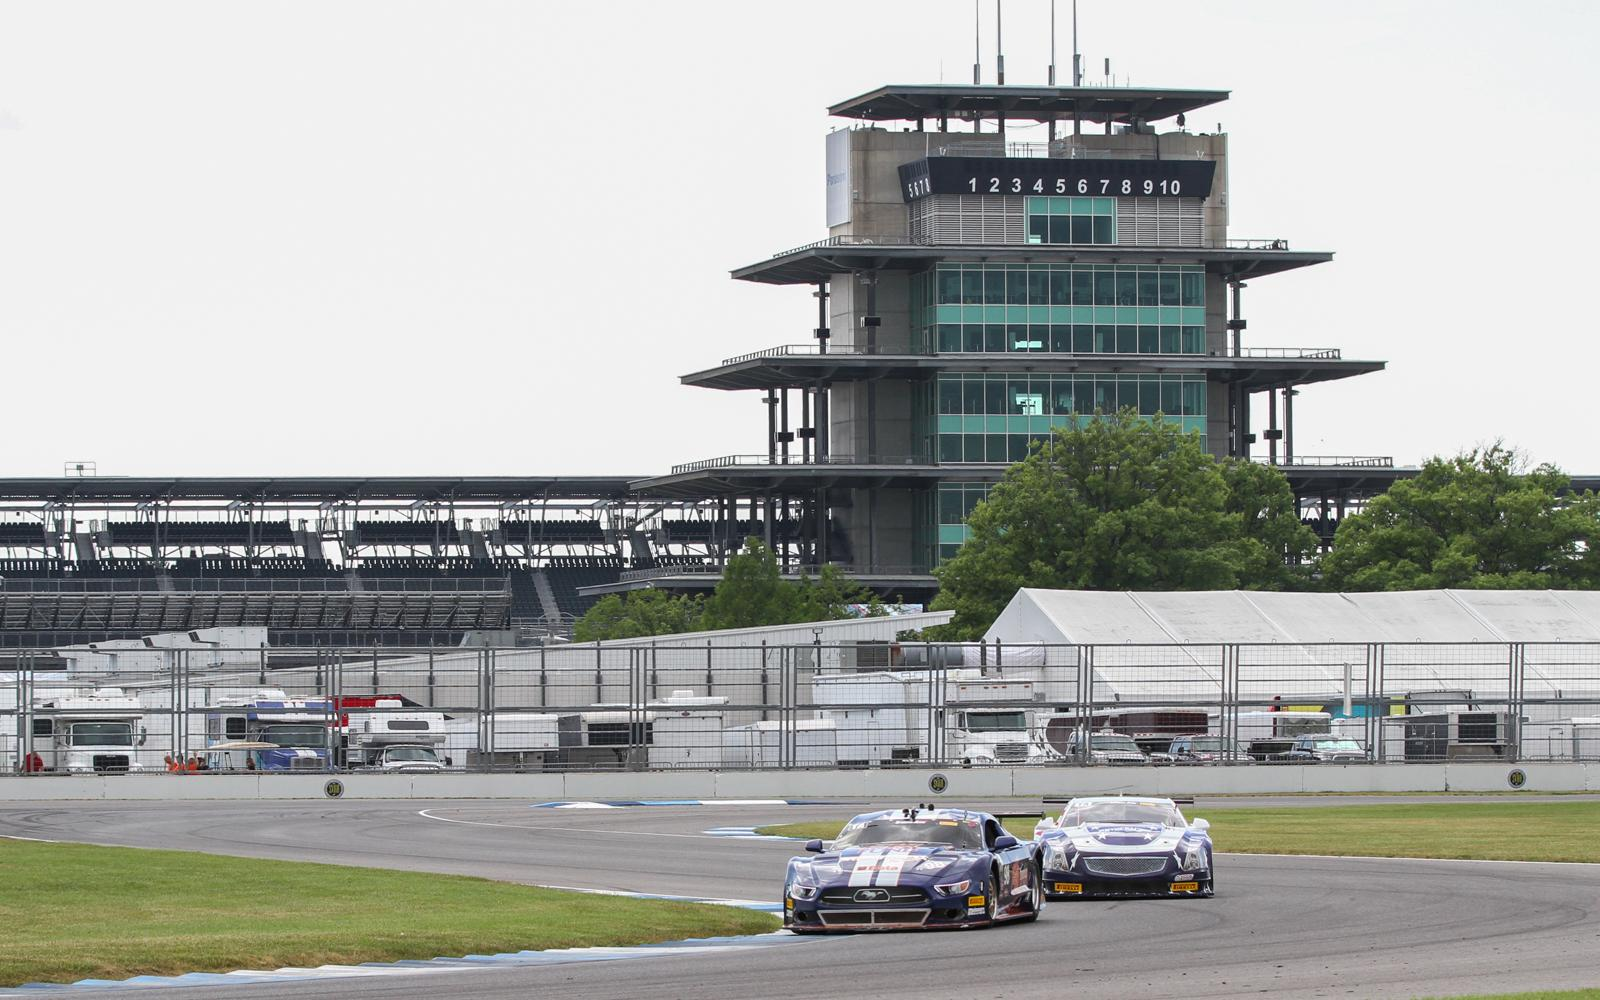 Trans Am opens Indy debut with practice